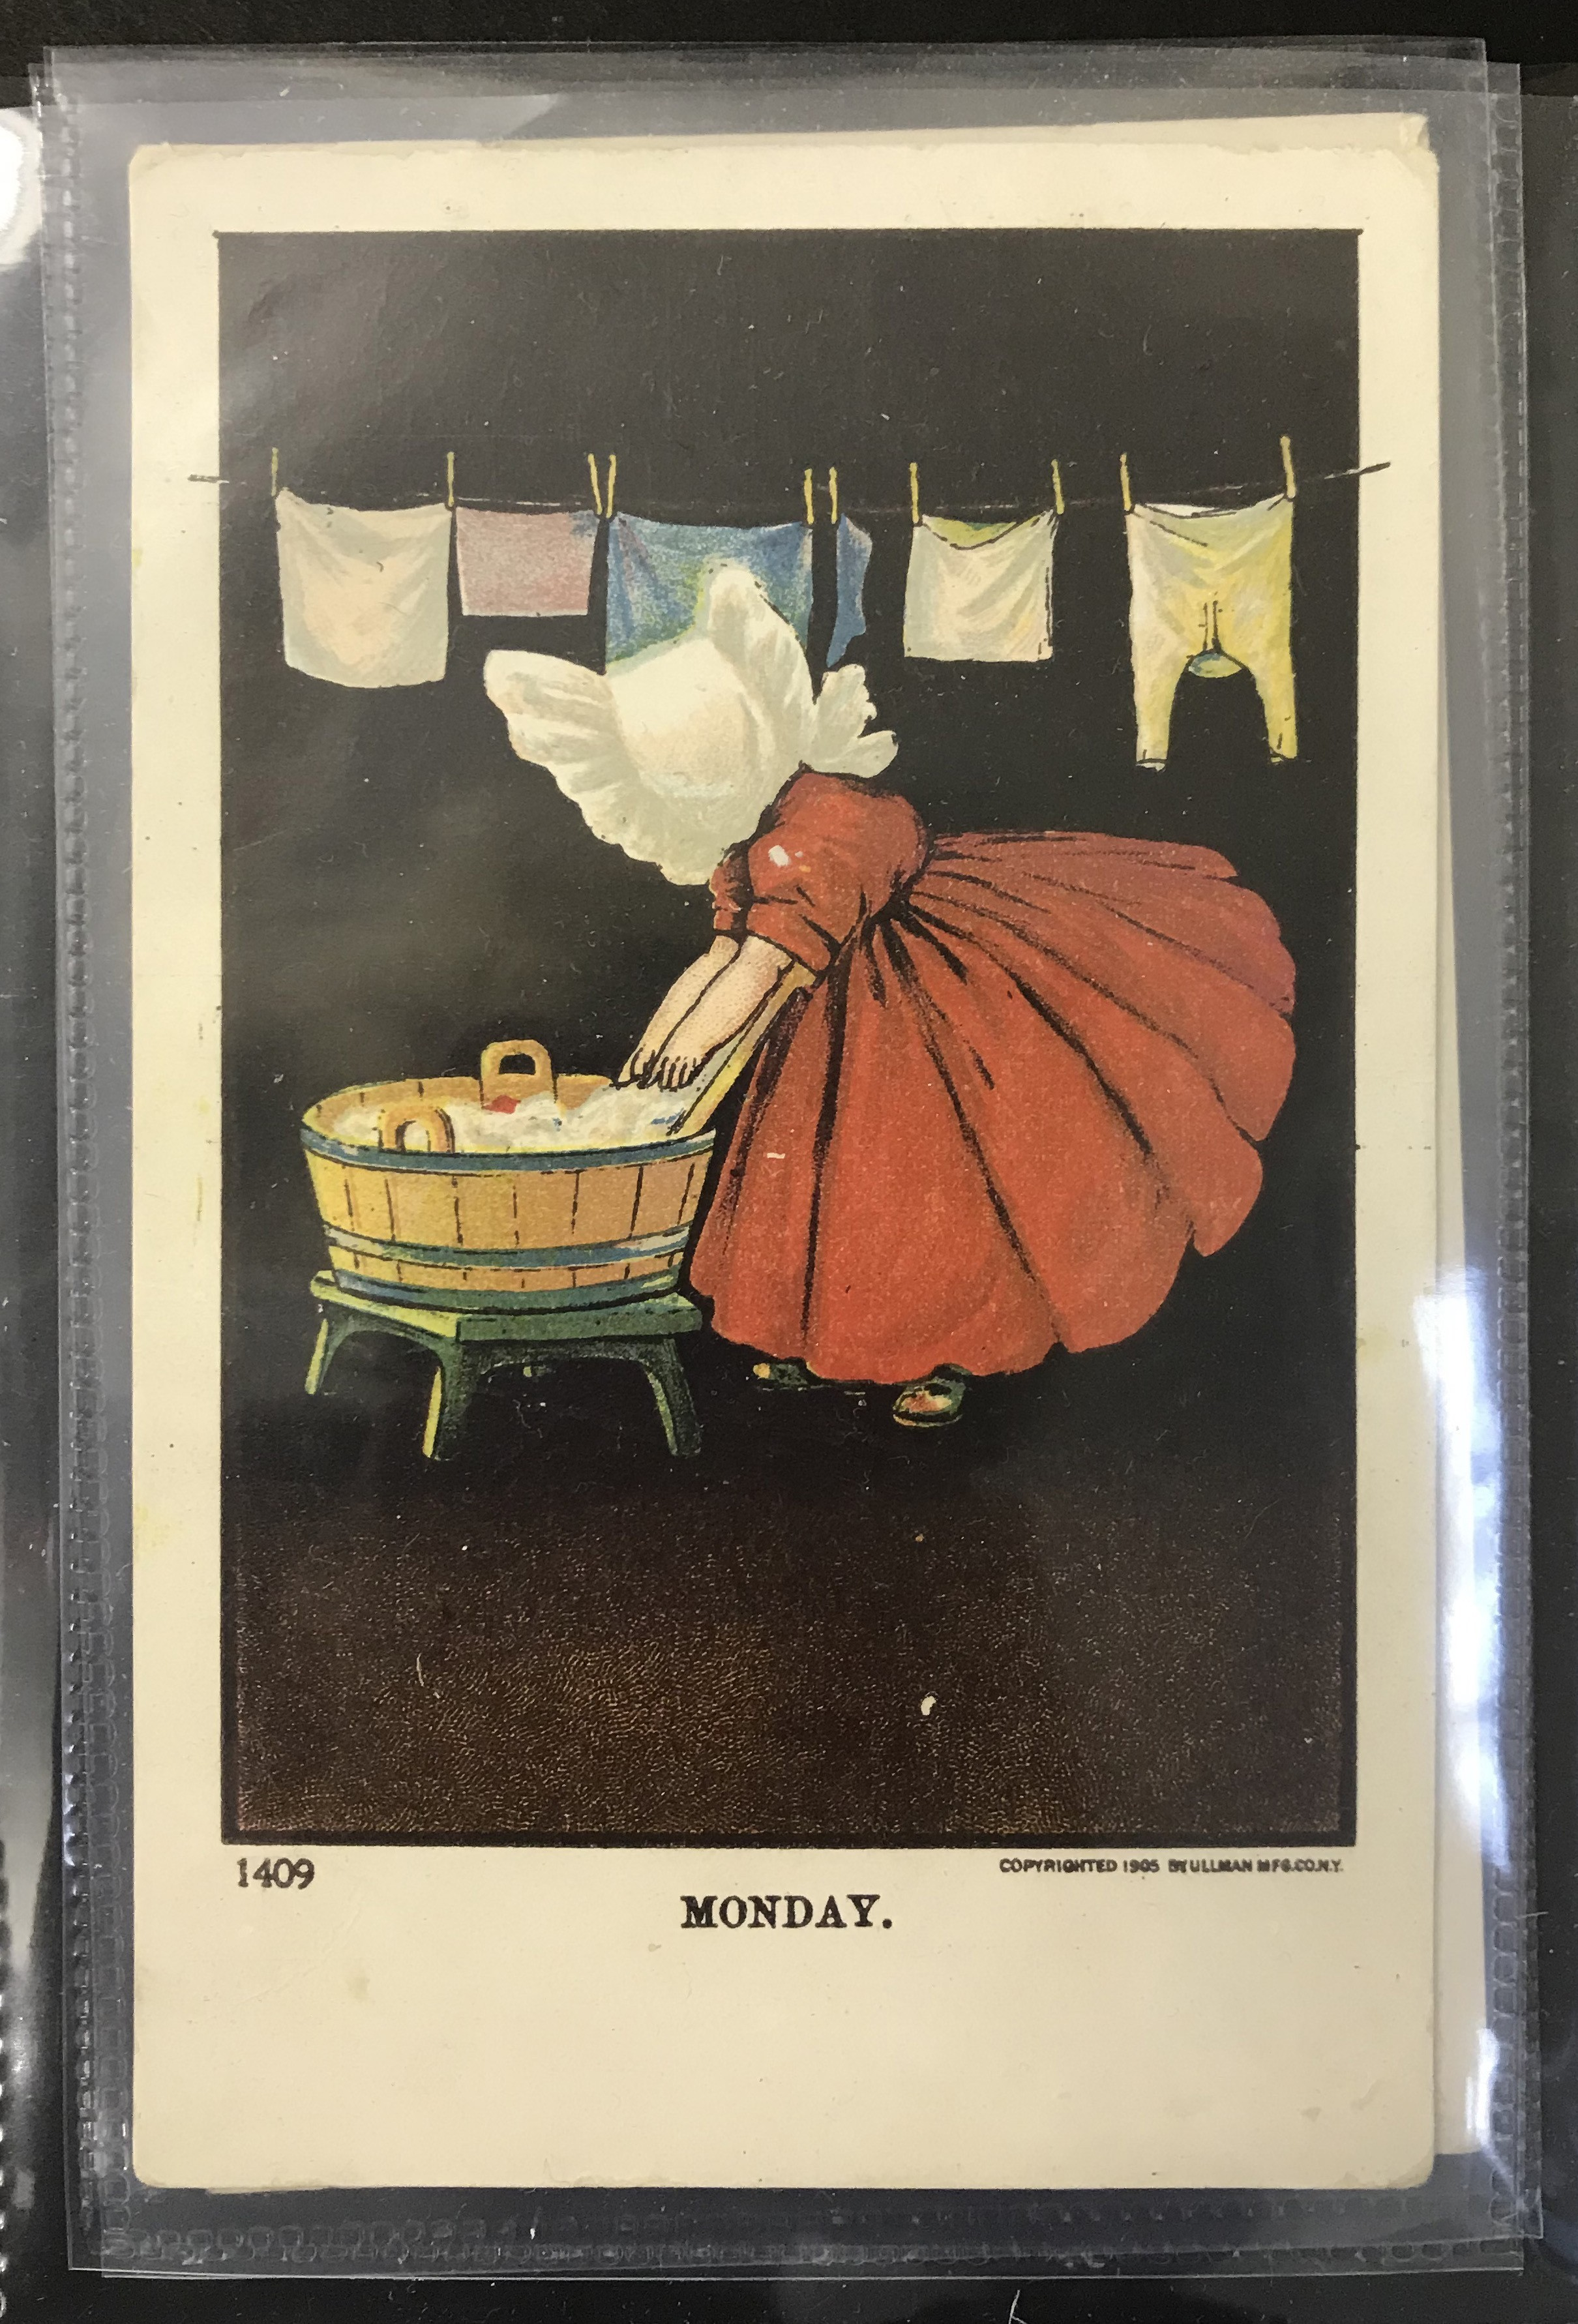 Ullman Manufacturing Co. Postcards - Complete set of Sunbonnet Baby Days - Image 4 of 11